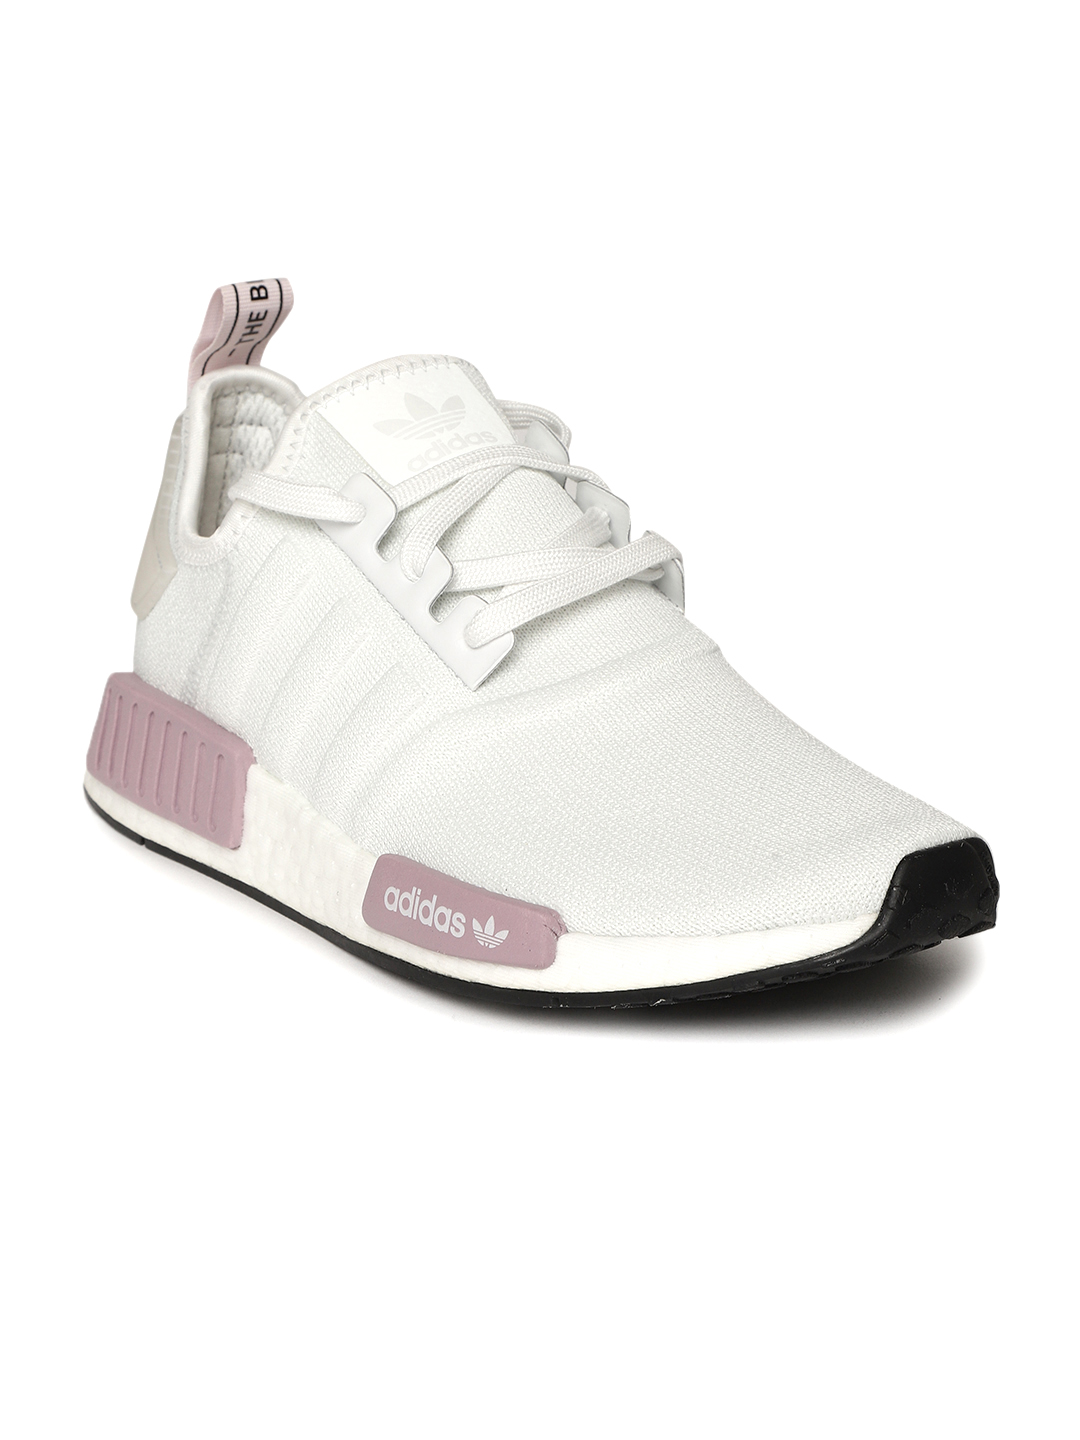 Adidas Shoes Women : Adidas Online Best Price Guarantee at